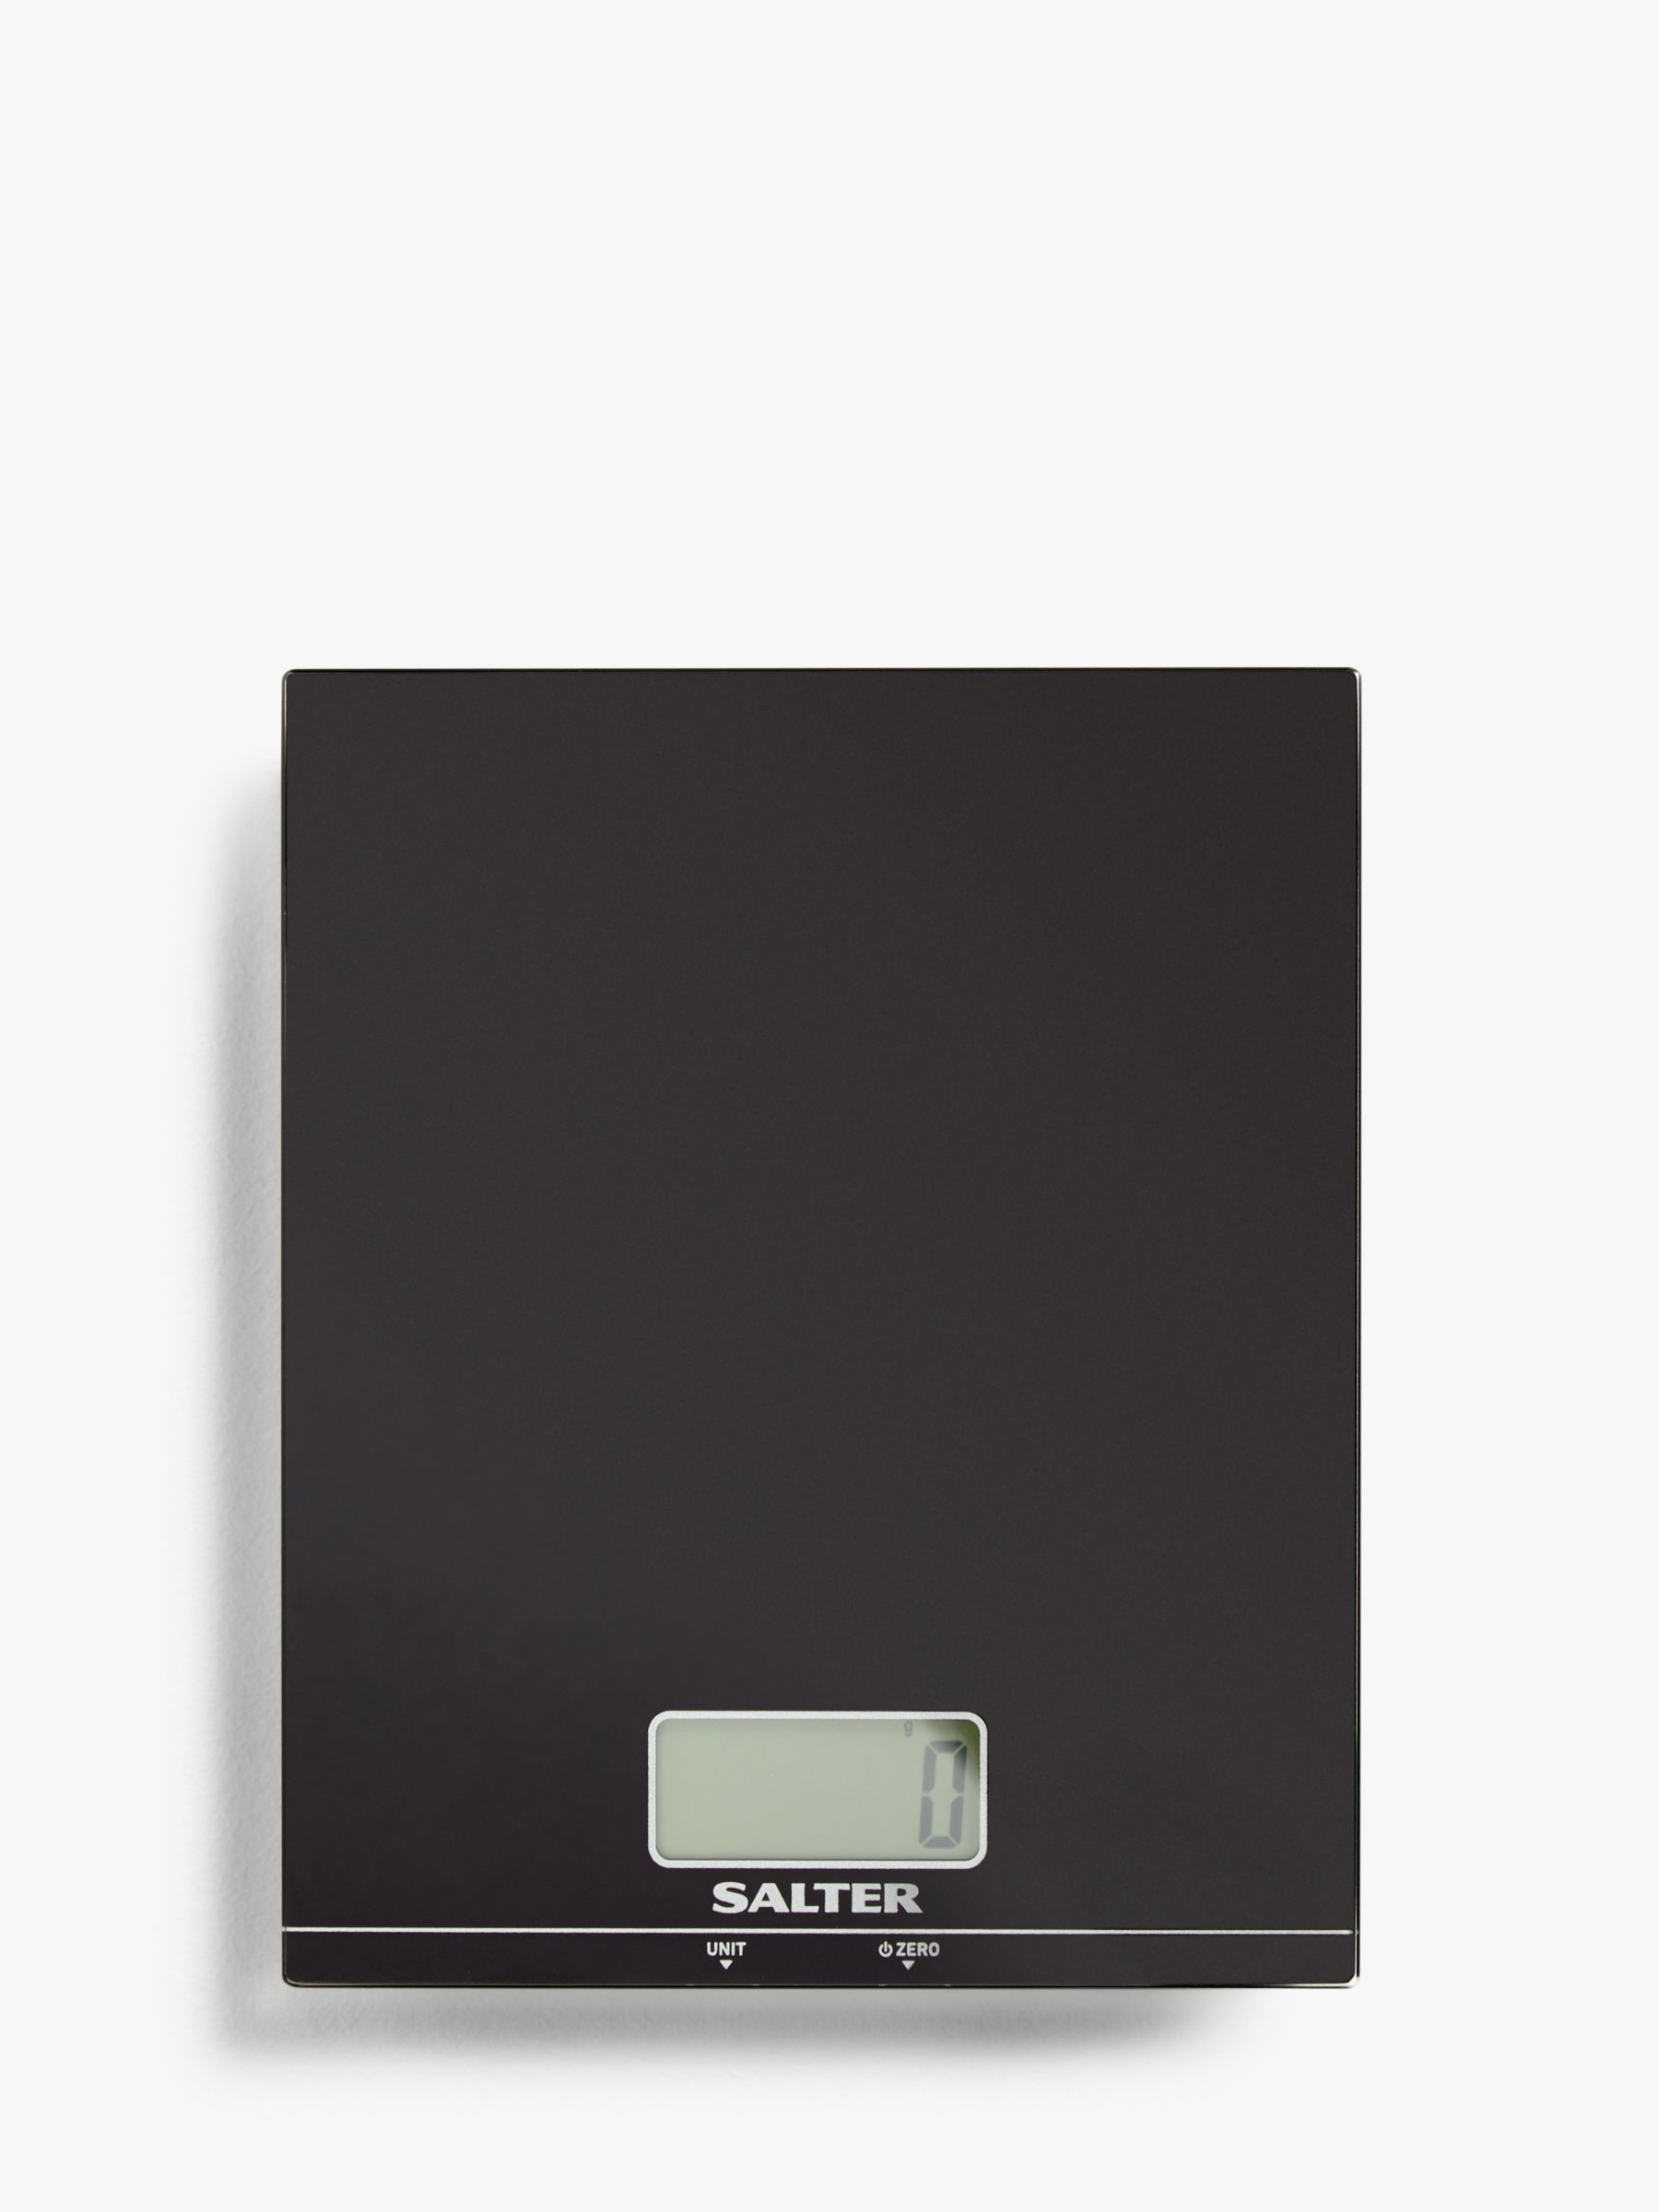 Salter Salter Large Ultra Slim Electronic Kitchen Scale, Black, 5kg